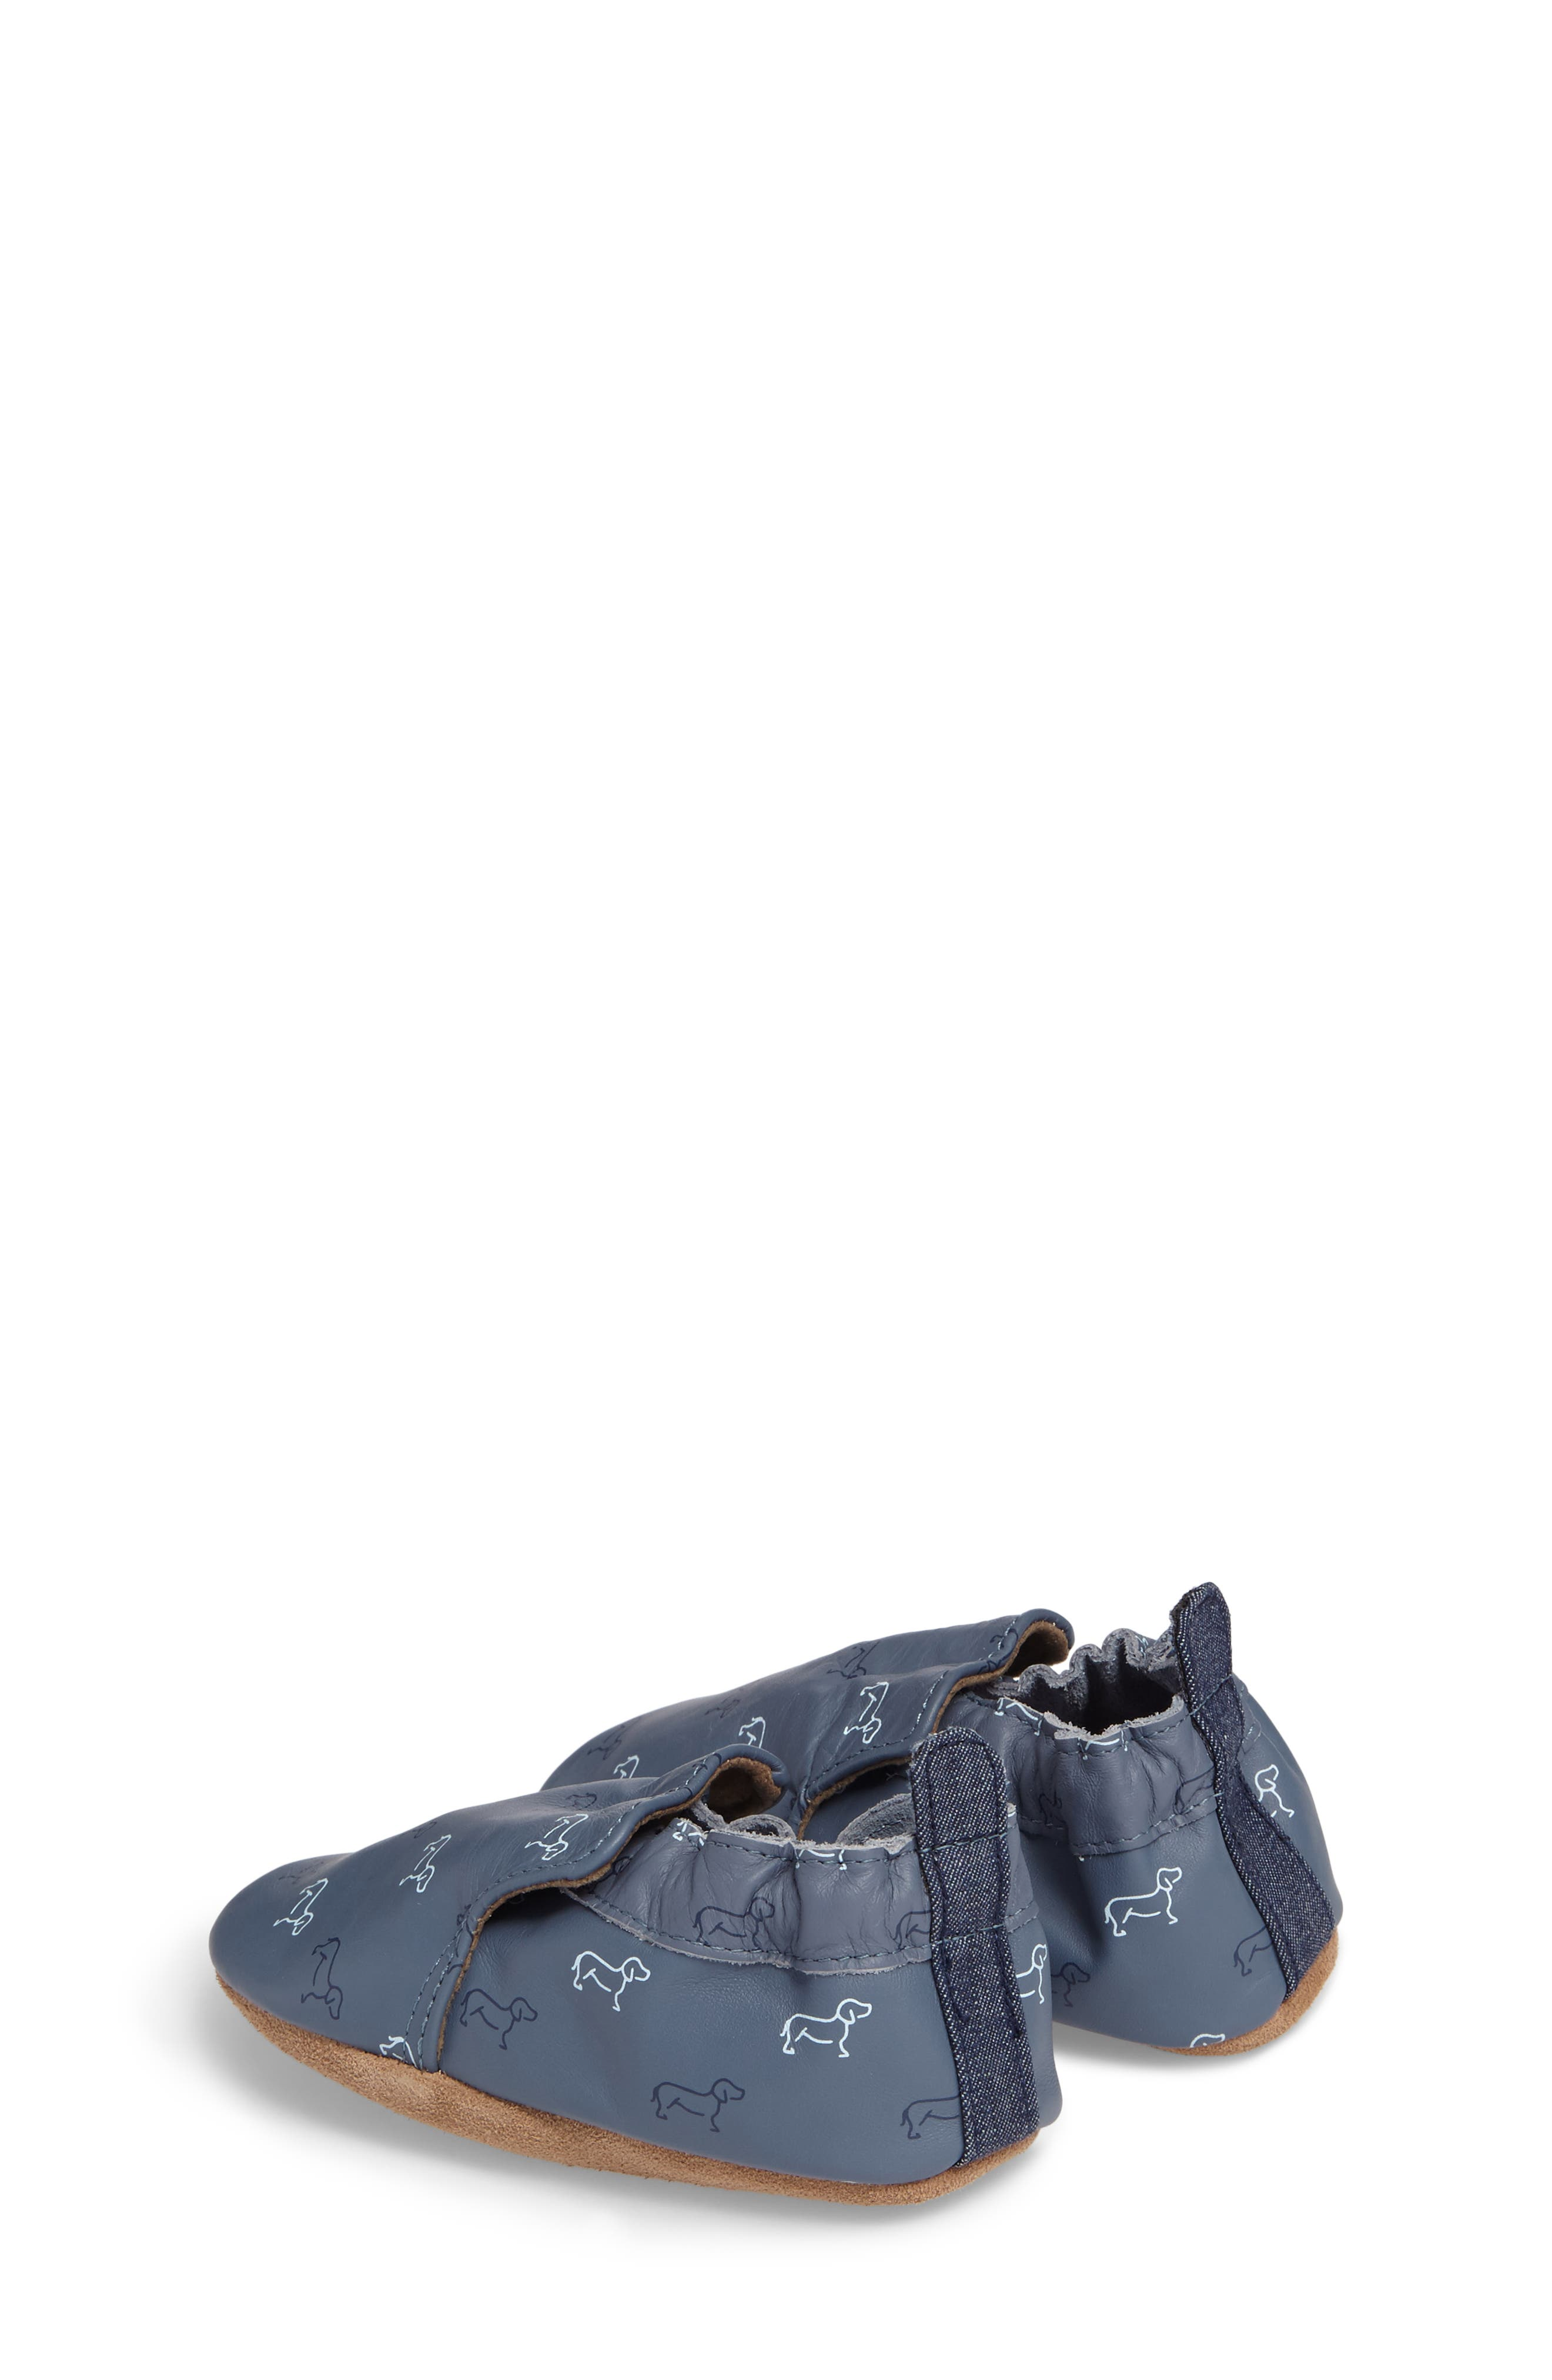 Puppy Love Crib Shoe,                             Alternate thumbnail 3, color,                             NAVY